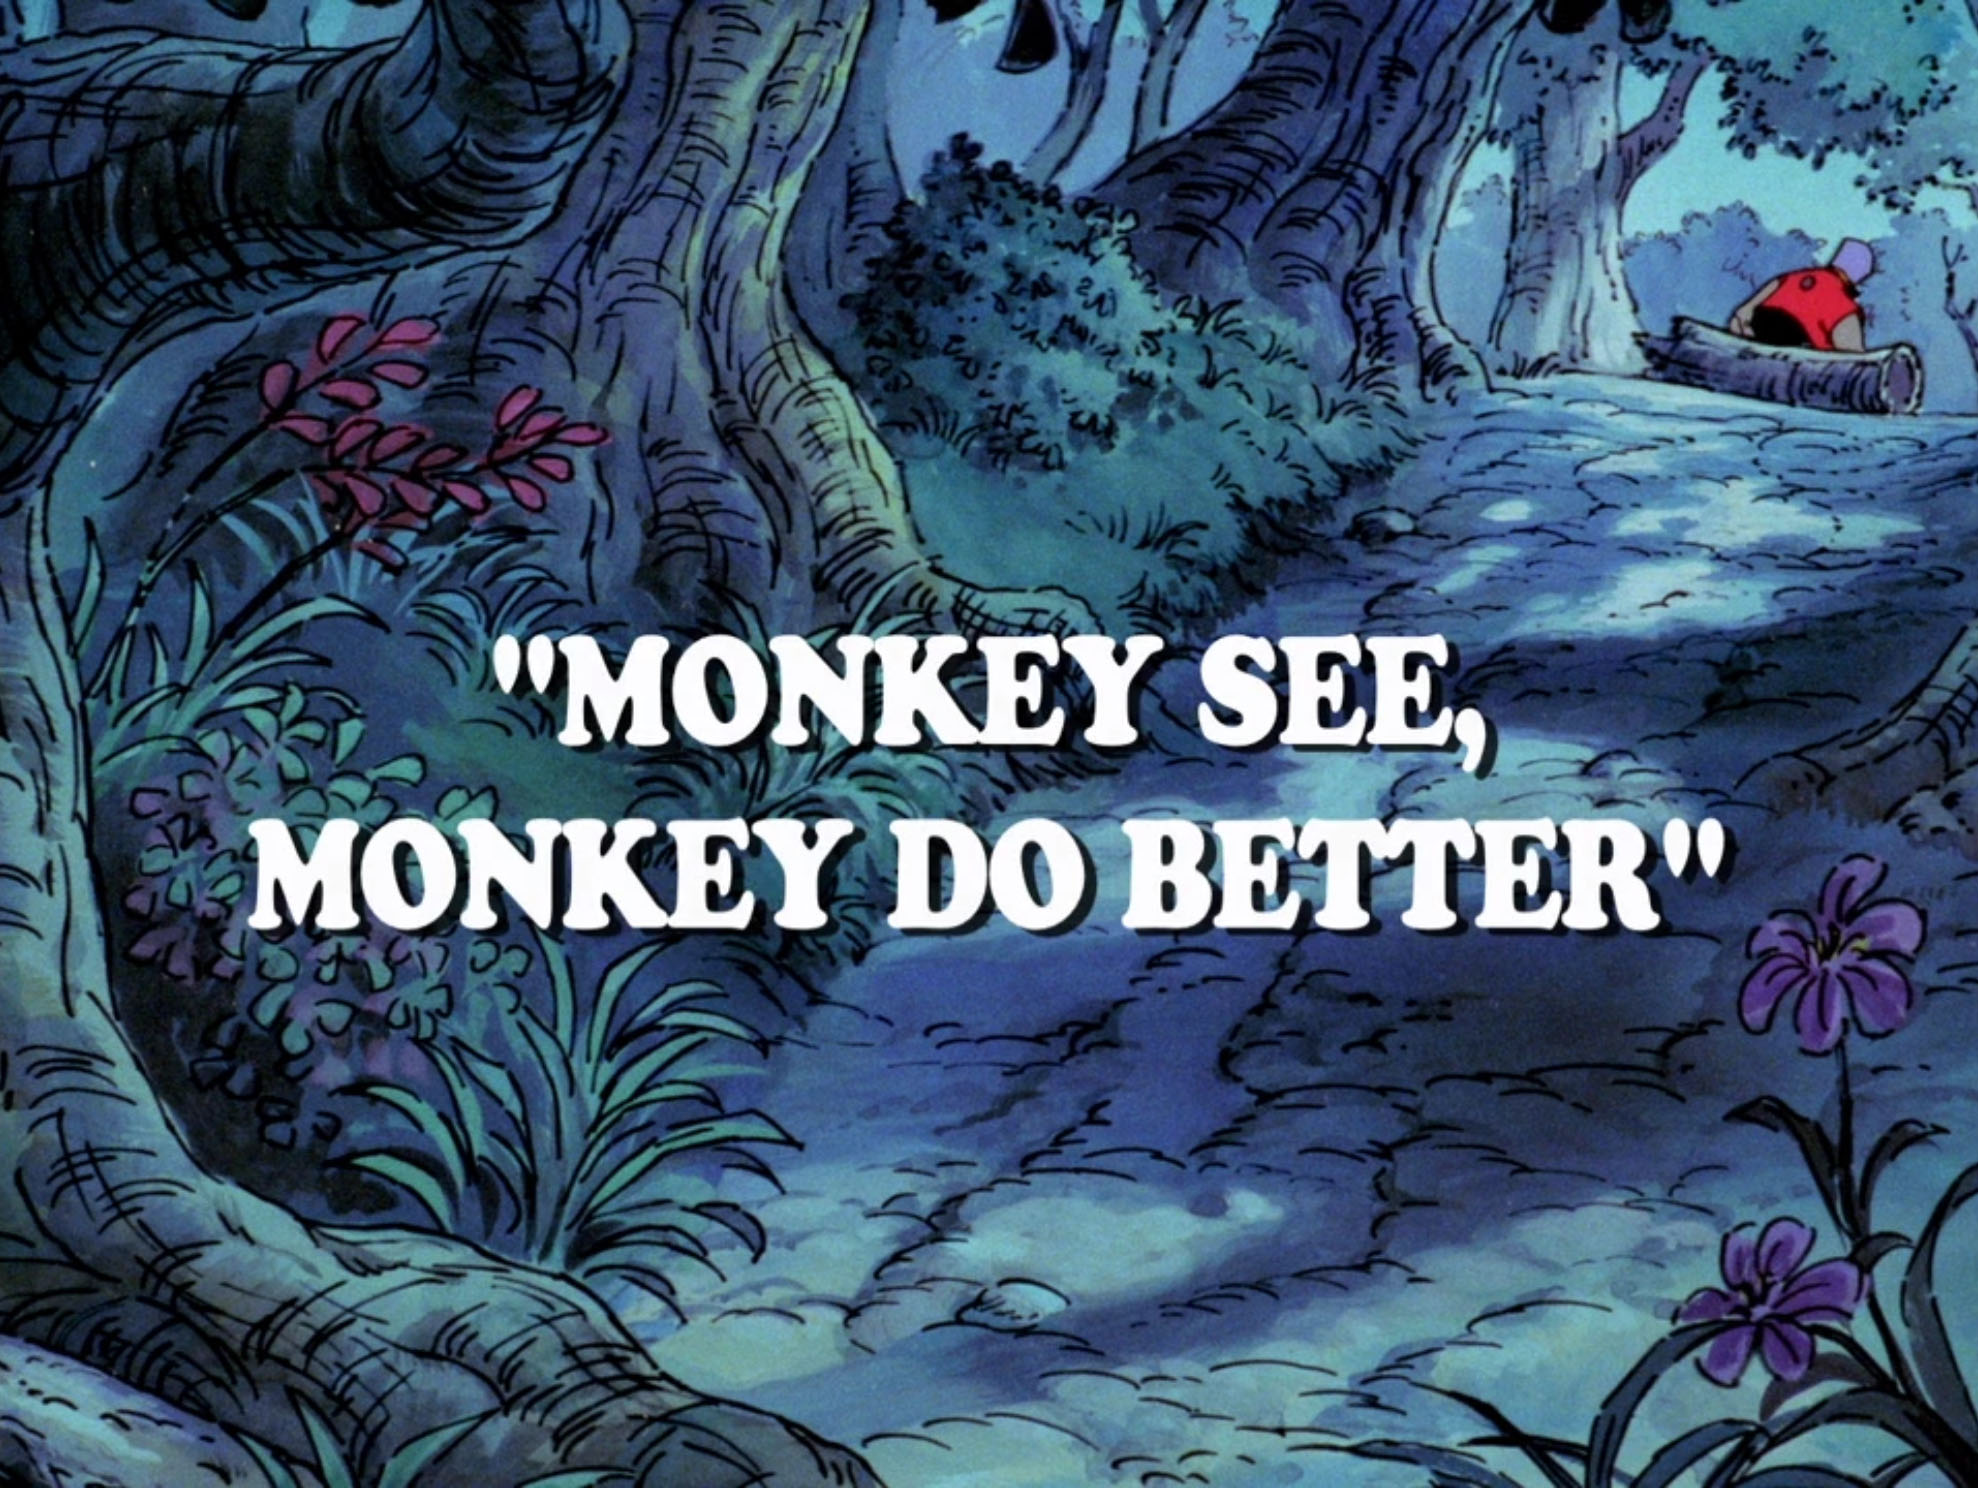 File:Monkey See, Monkey Do Better.jpg